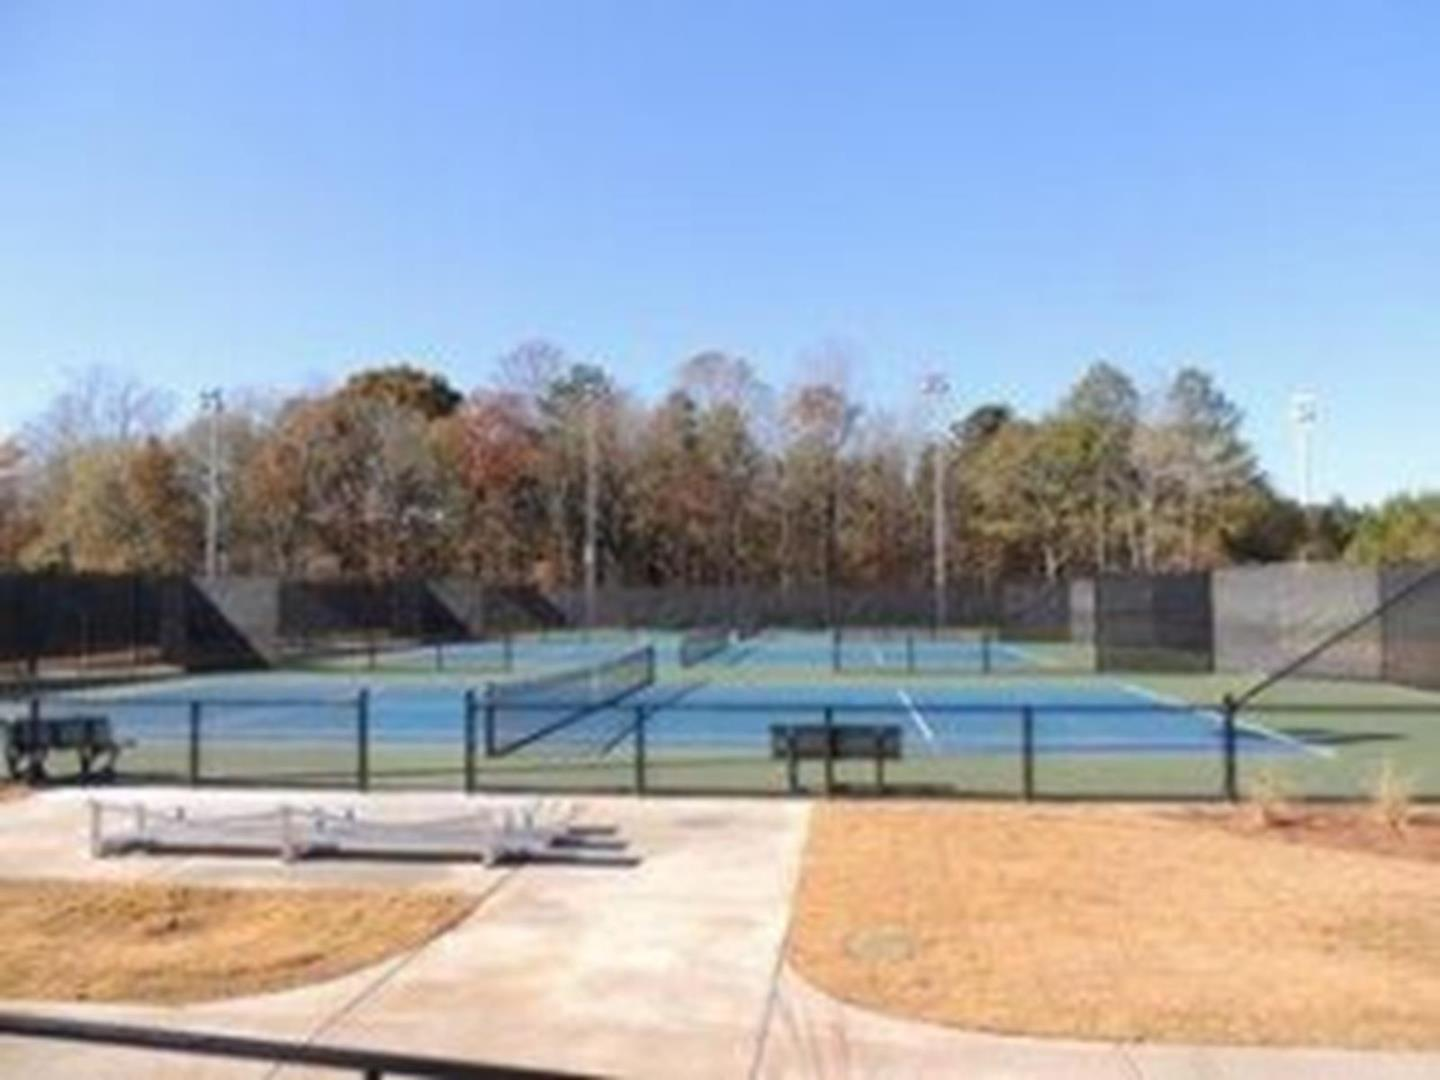 Clarke county tennis center